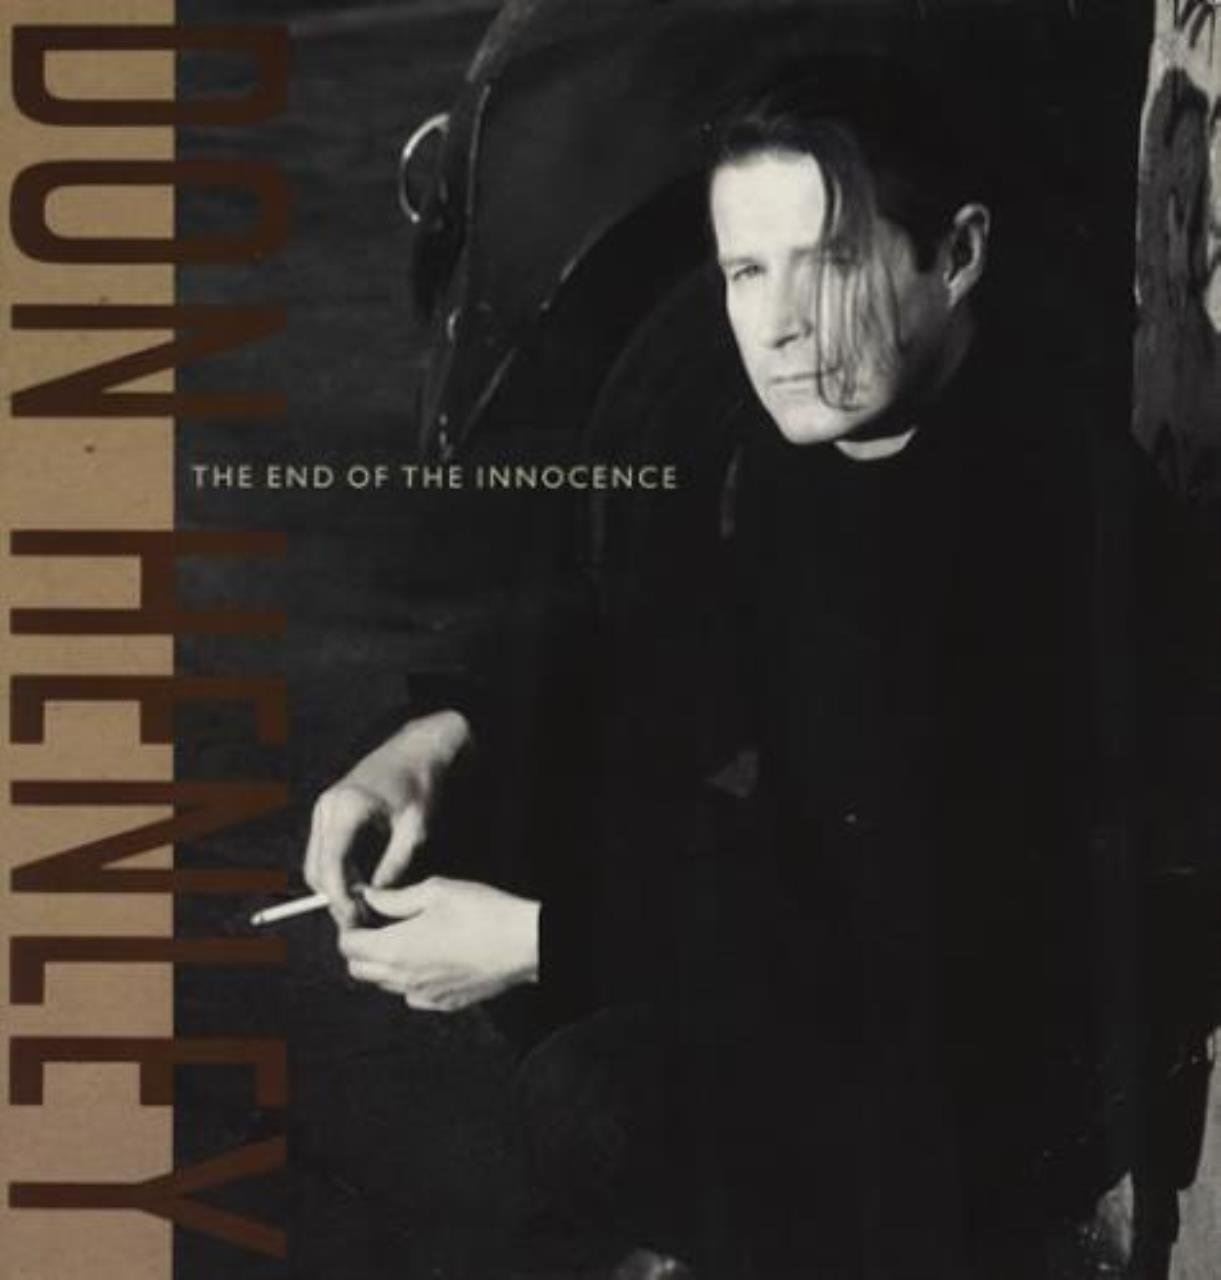 The End of the Innocence by Geffen Records